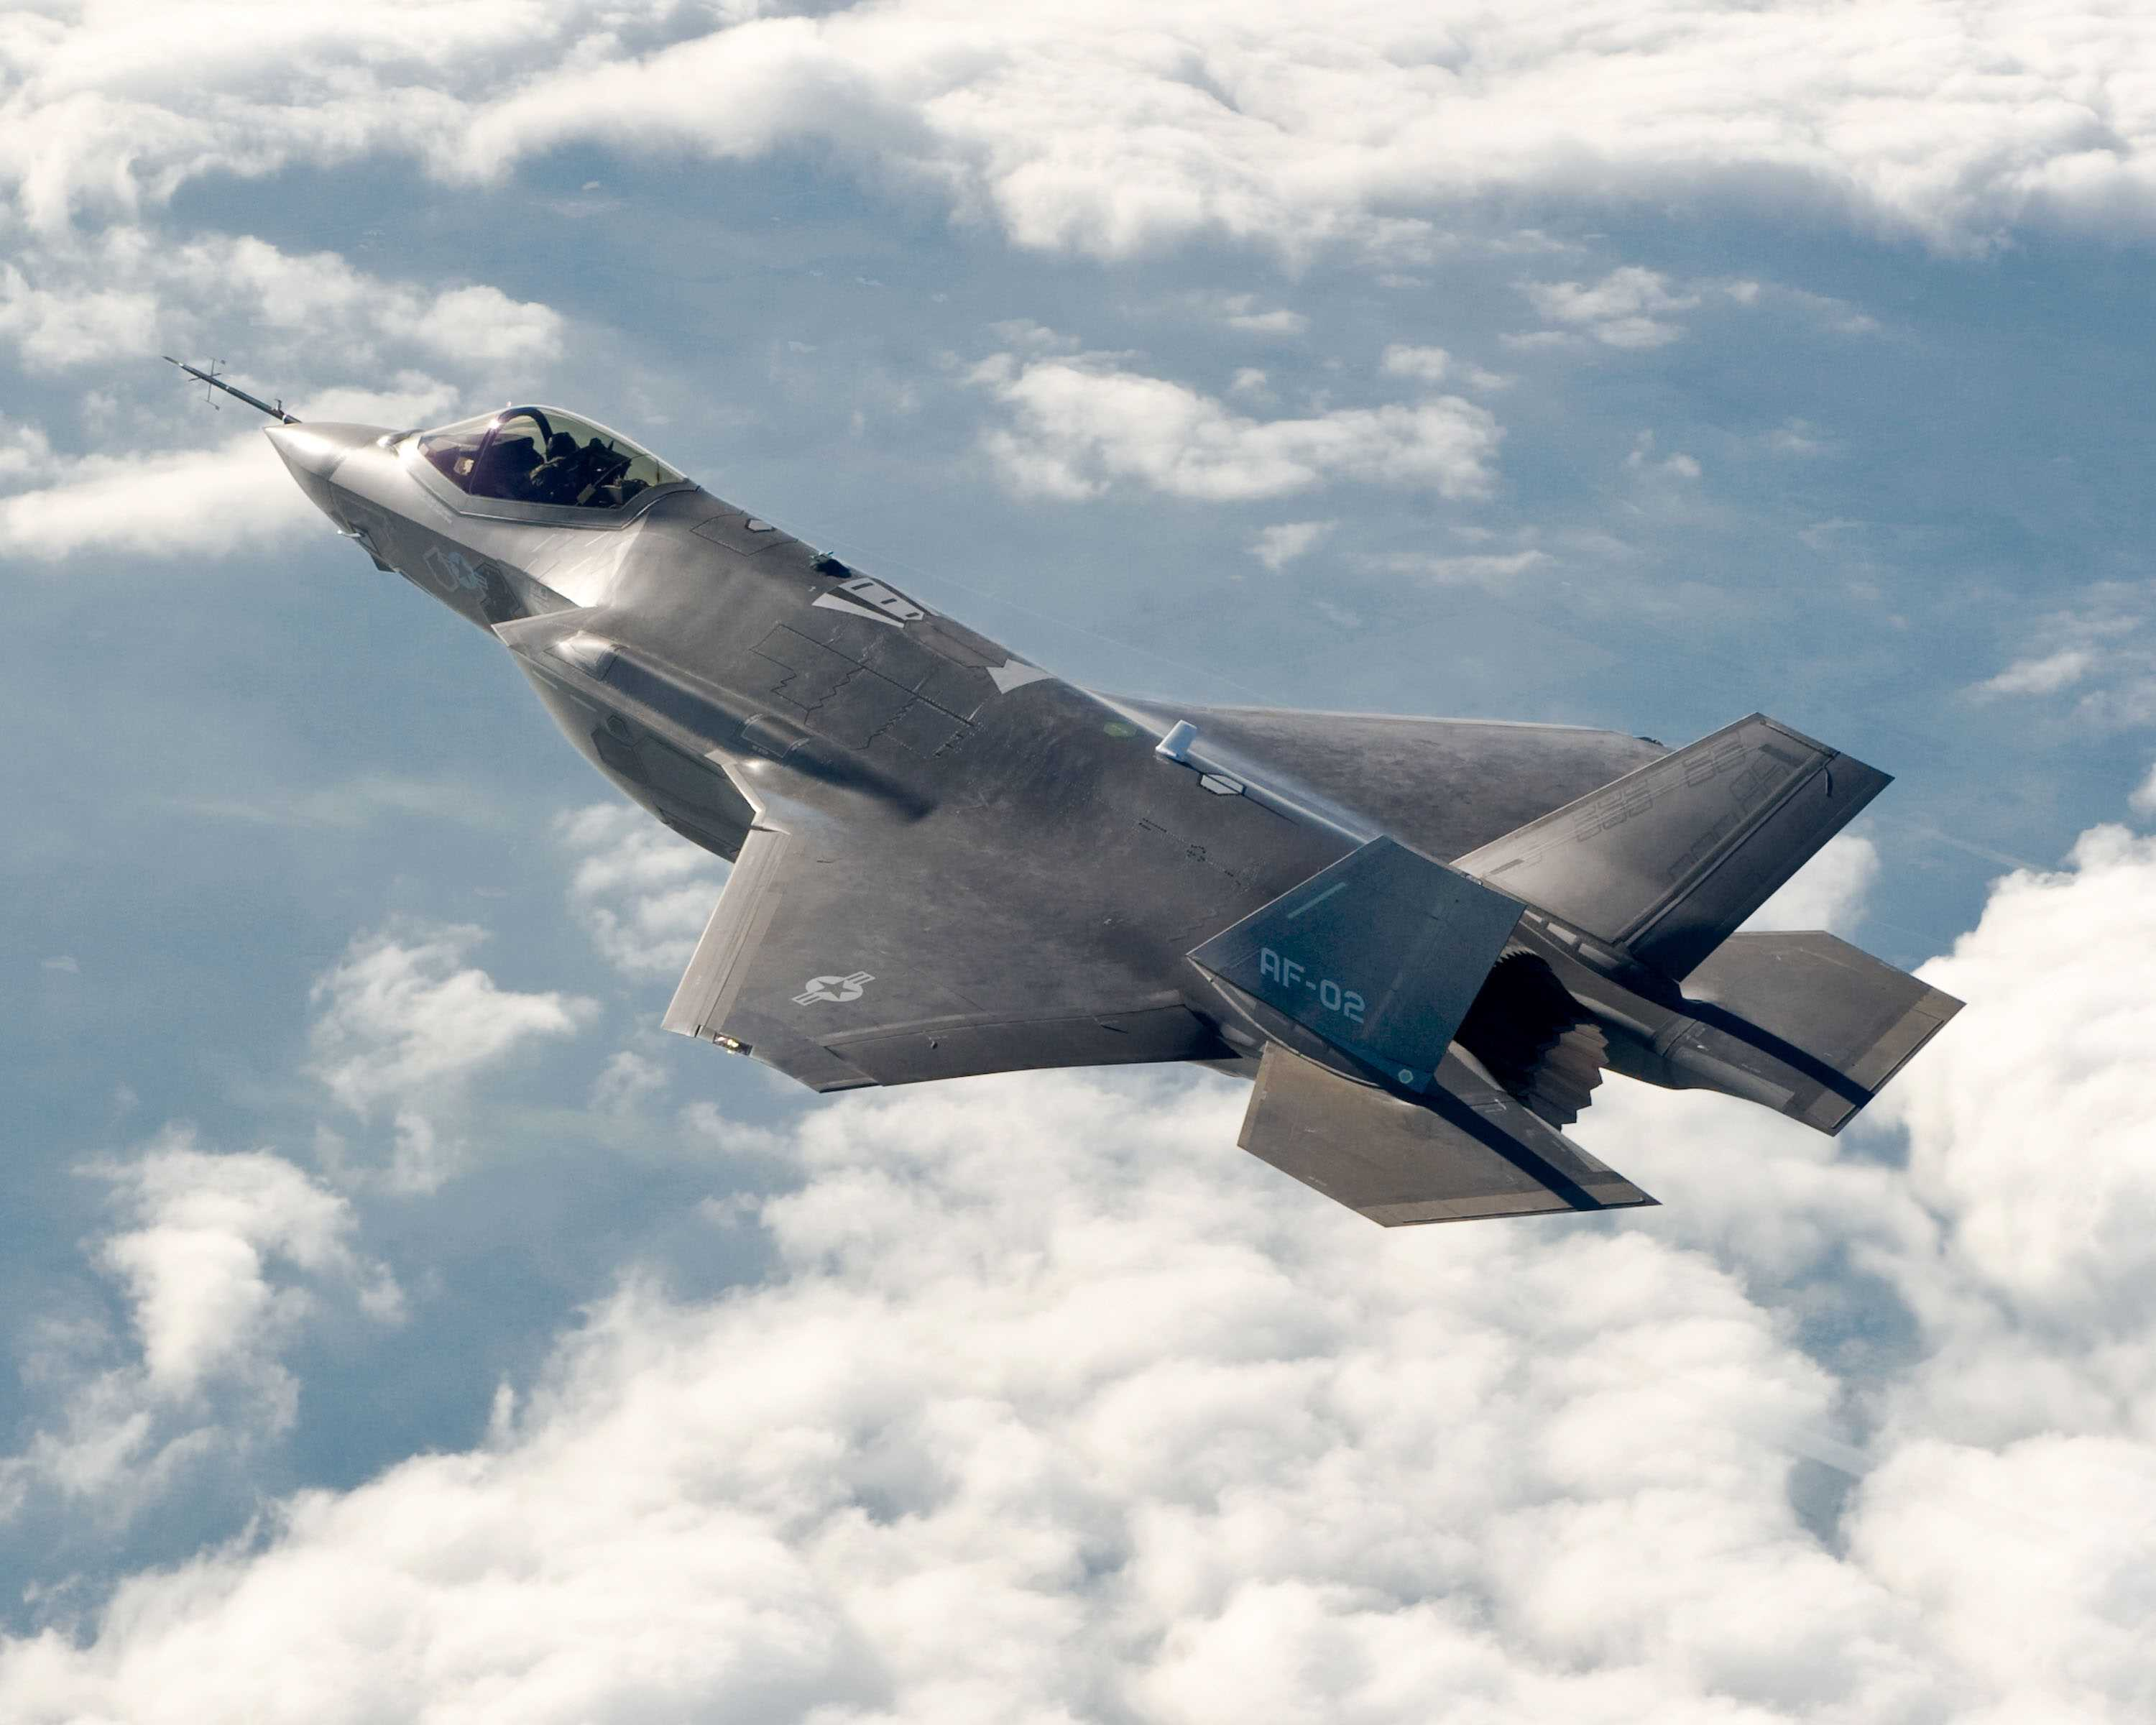 Lockheed to completely freeze pension plan by 2020